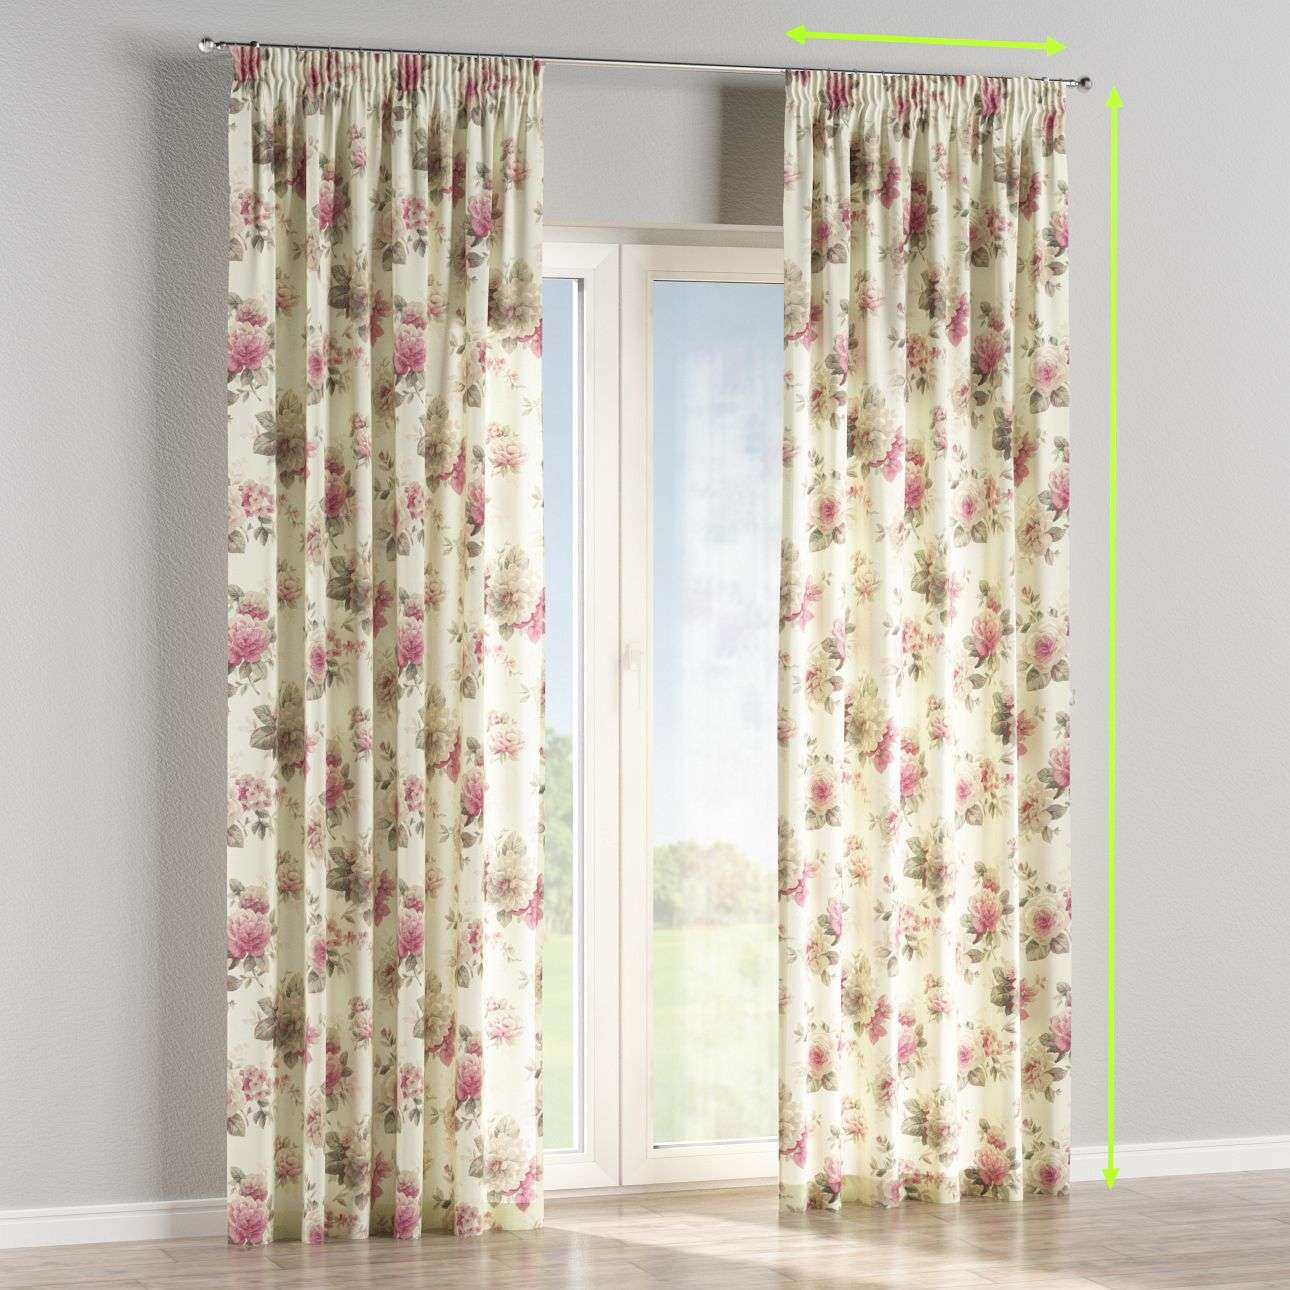 Pencil pleat lined curtains in collection Mirella, fabric: 141-07